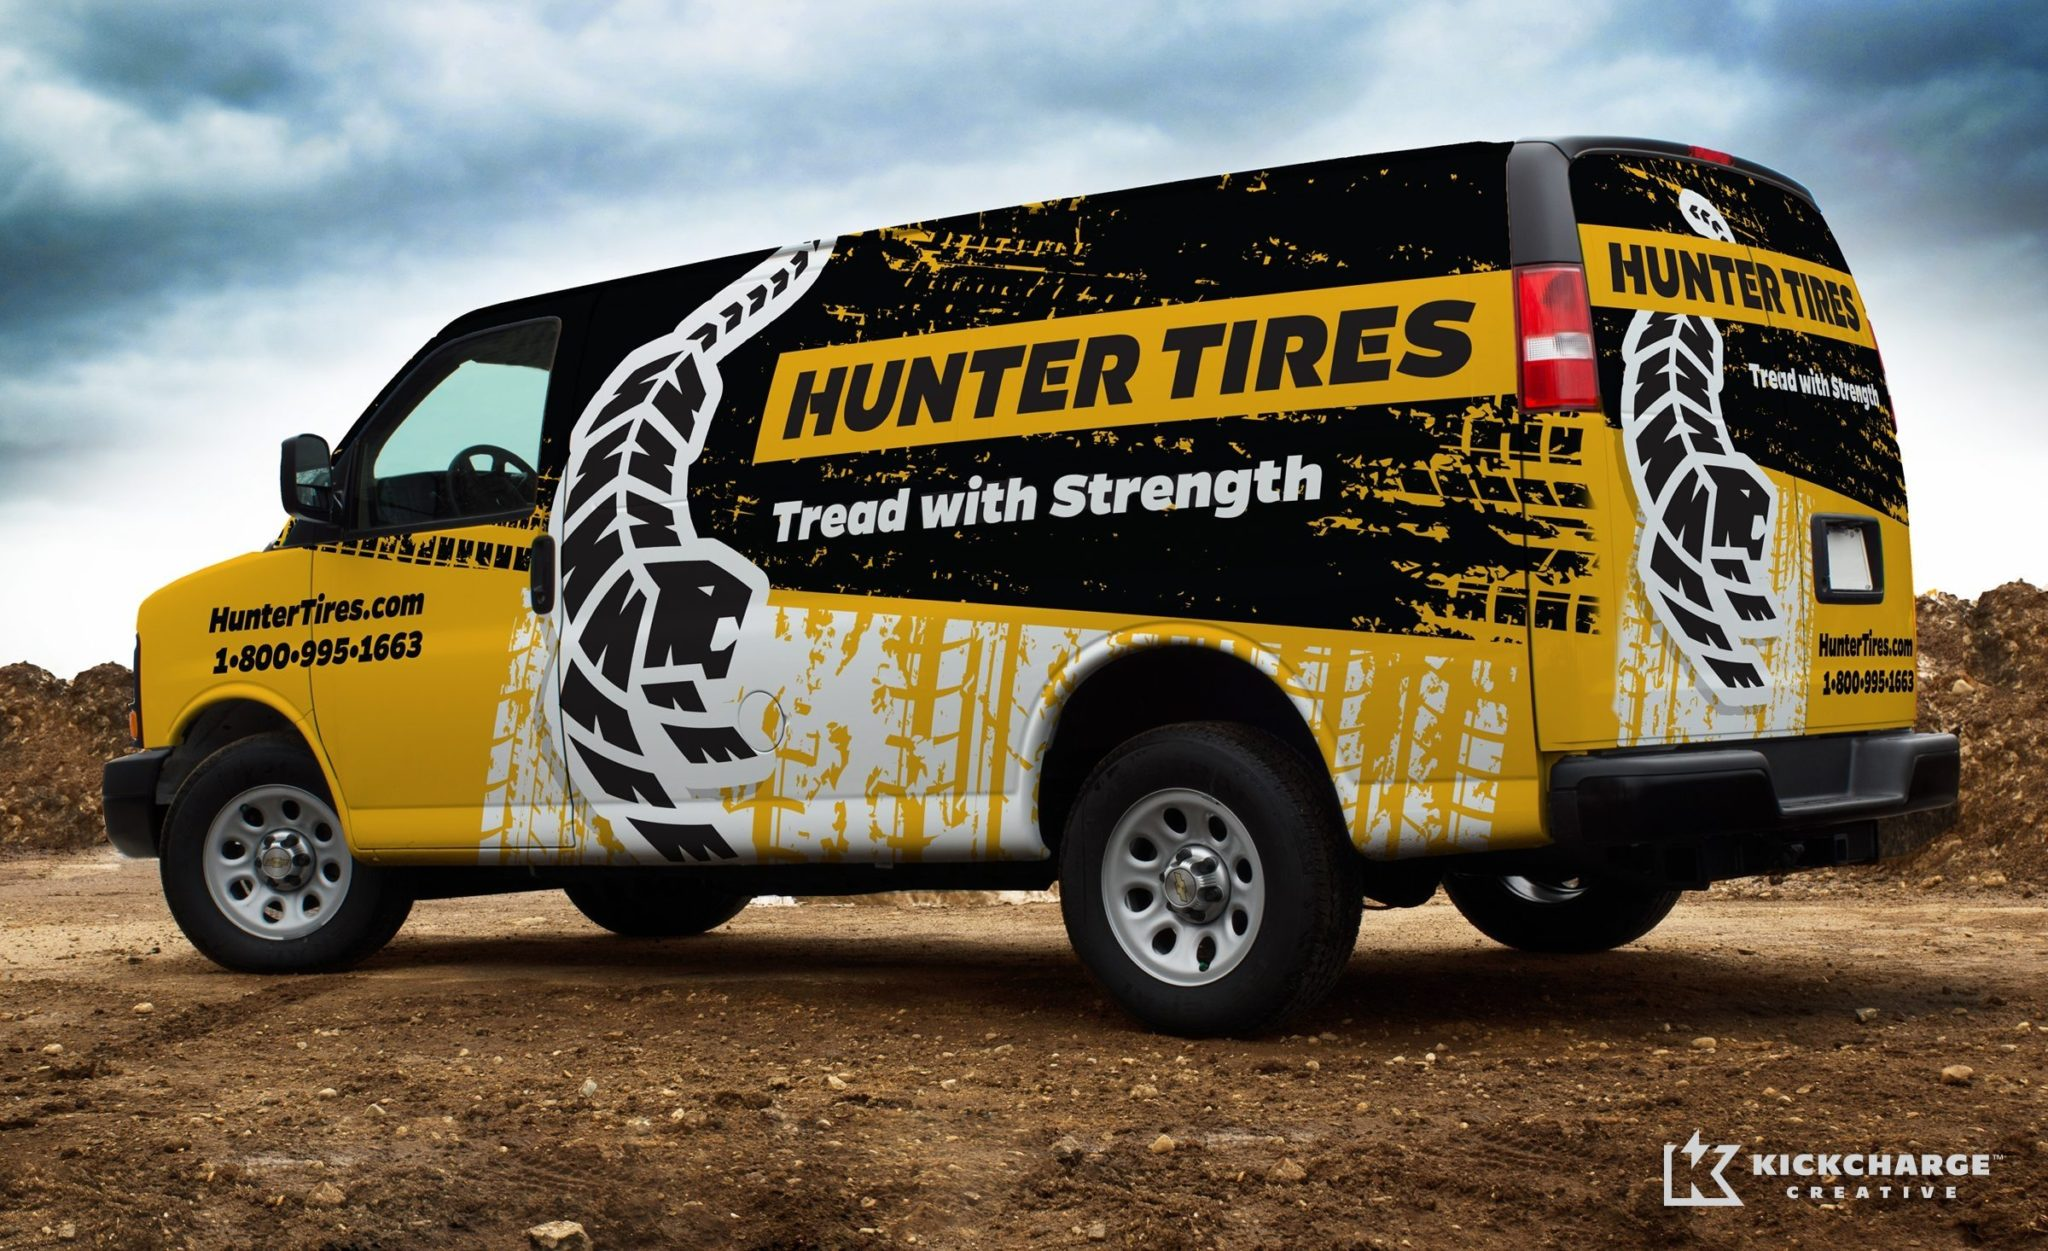 Vehicle design for a tire company in California.